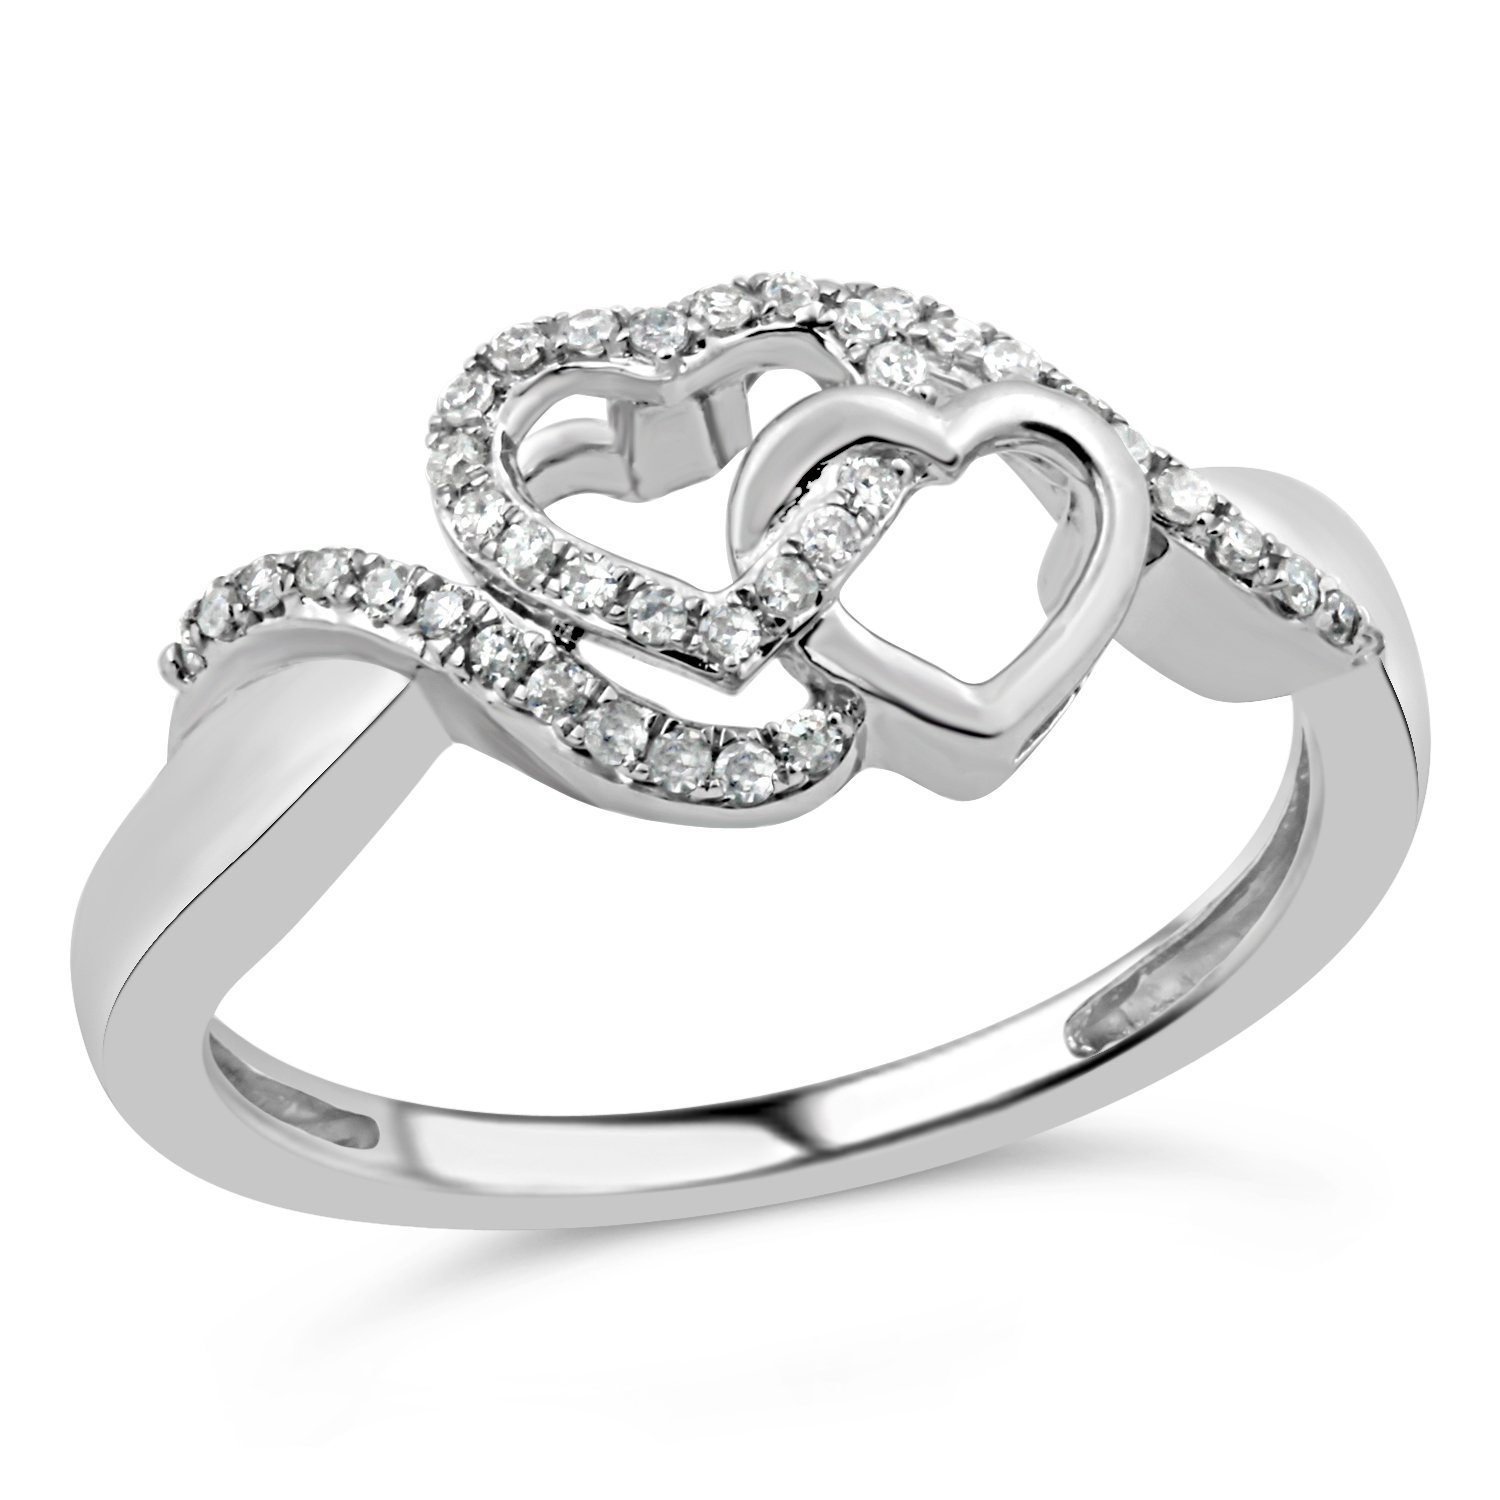 Diamond Promise Ring in Rhodium Plated Sterling Silver 1/10 cttw